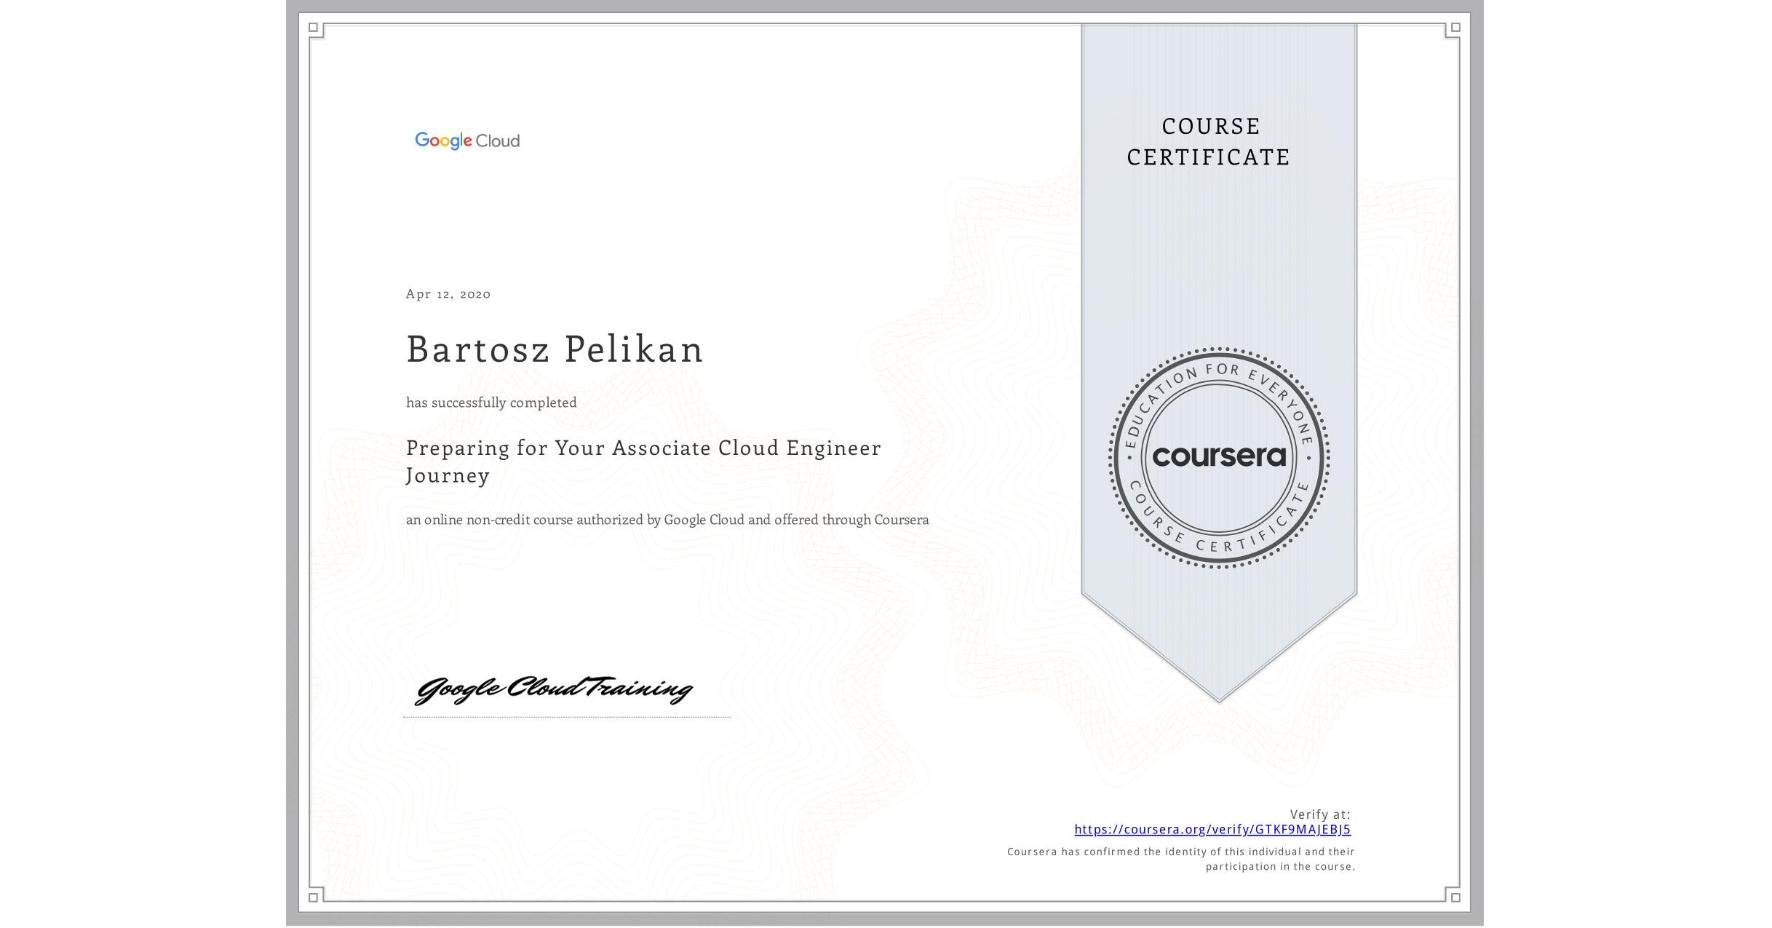 View certificate for Bartosz Pelikan, Preparing for the Google Cloud Associate Cloud Engineer Exam, an online non-credit course authorized by Google Cloud and offered through Coursera